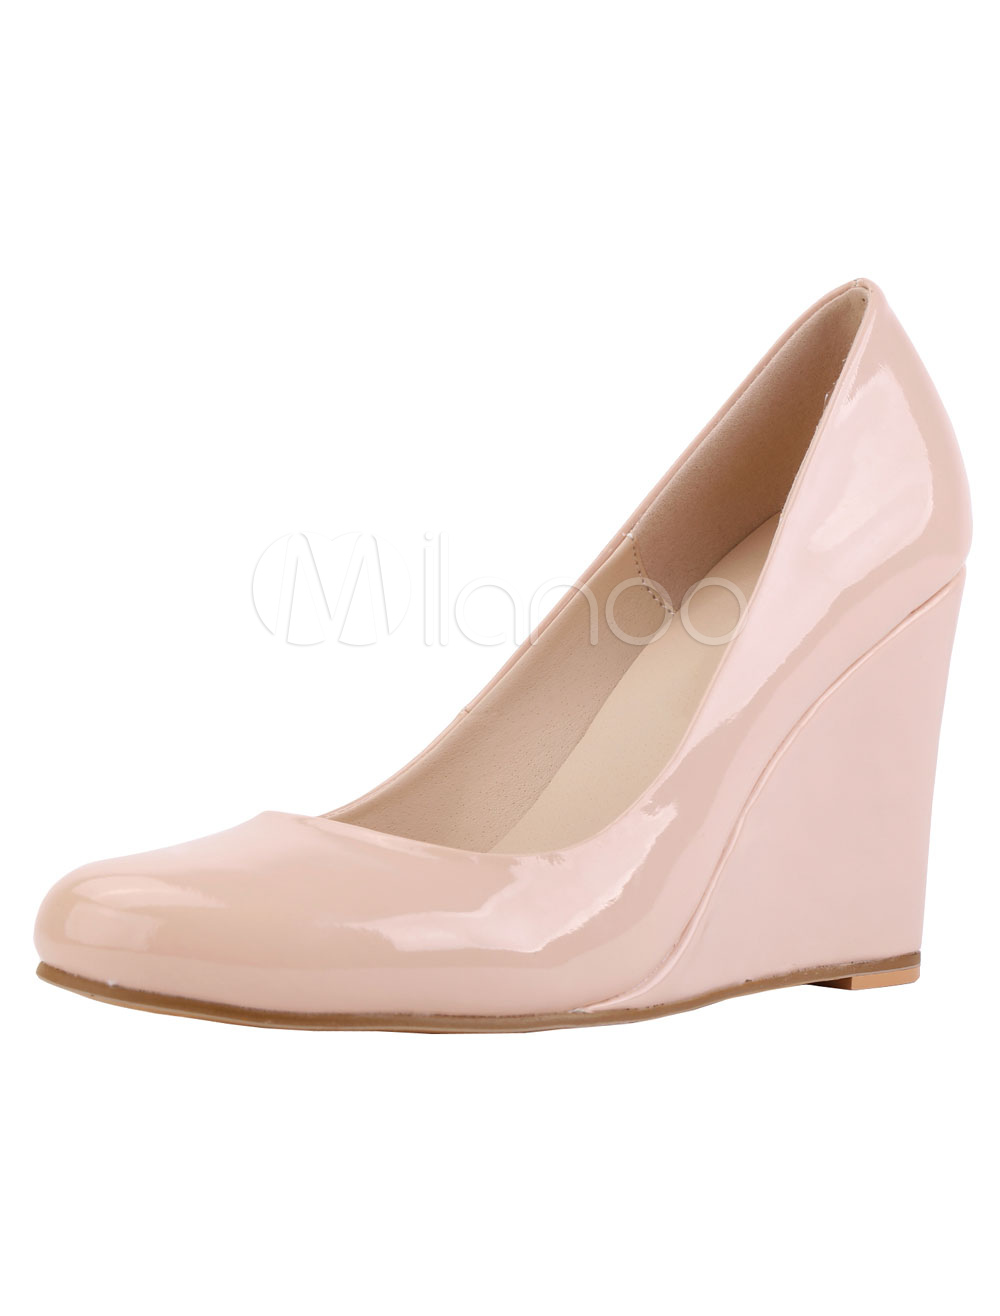 Pink Wedge Pumps Women's Solid Color Slip On Shoes